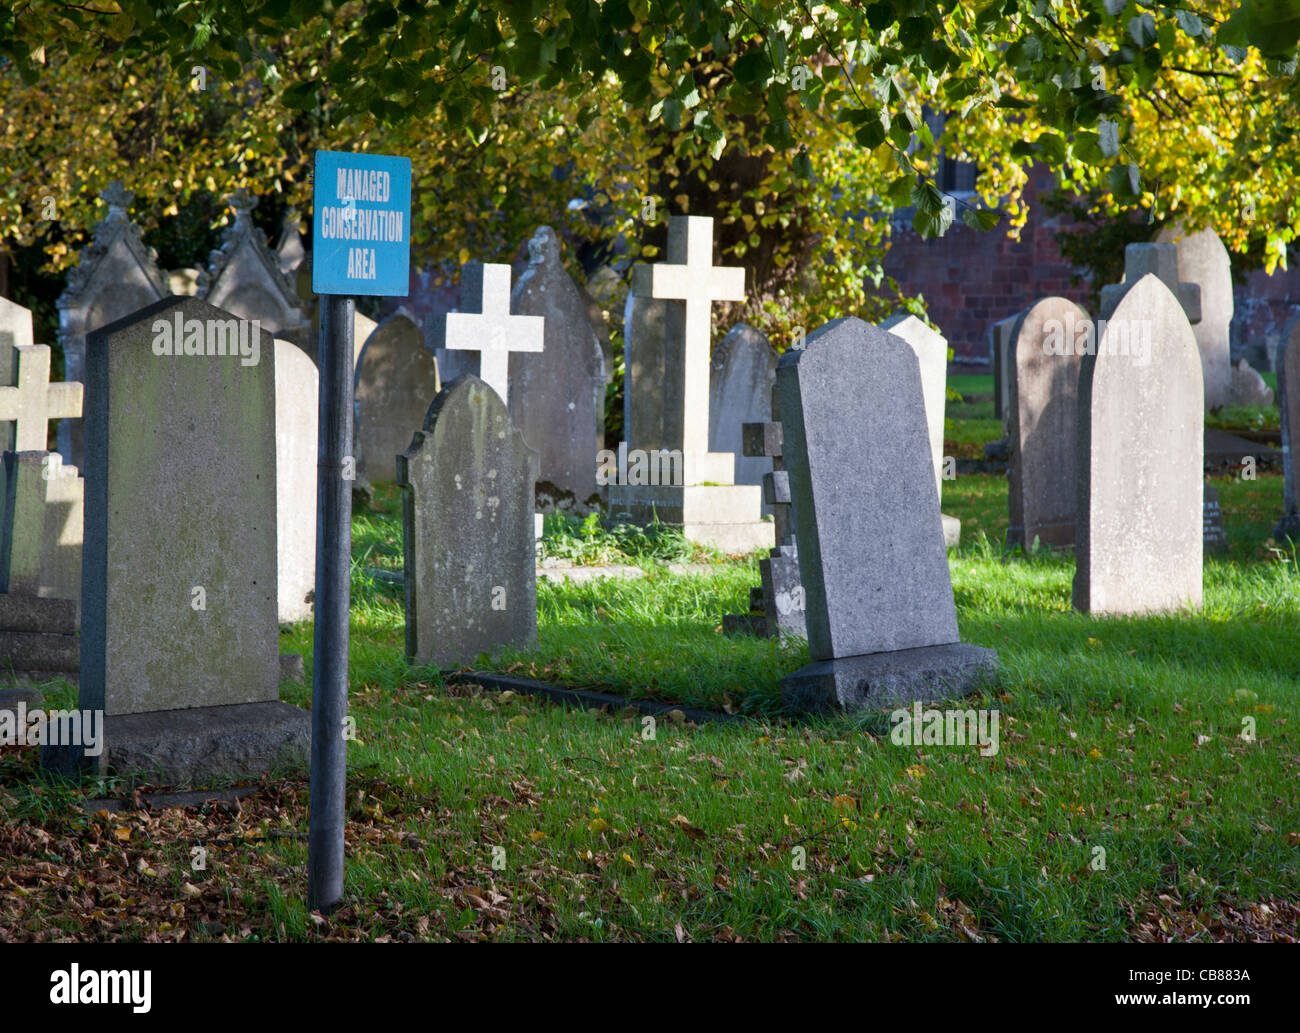 Graveyard with sign saying it is a Managed Conservation Area in Crediton, Devon, England - Stock Image